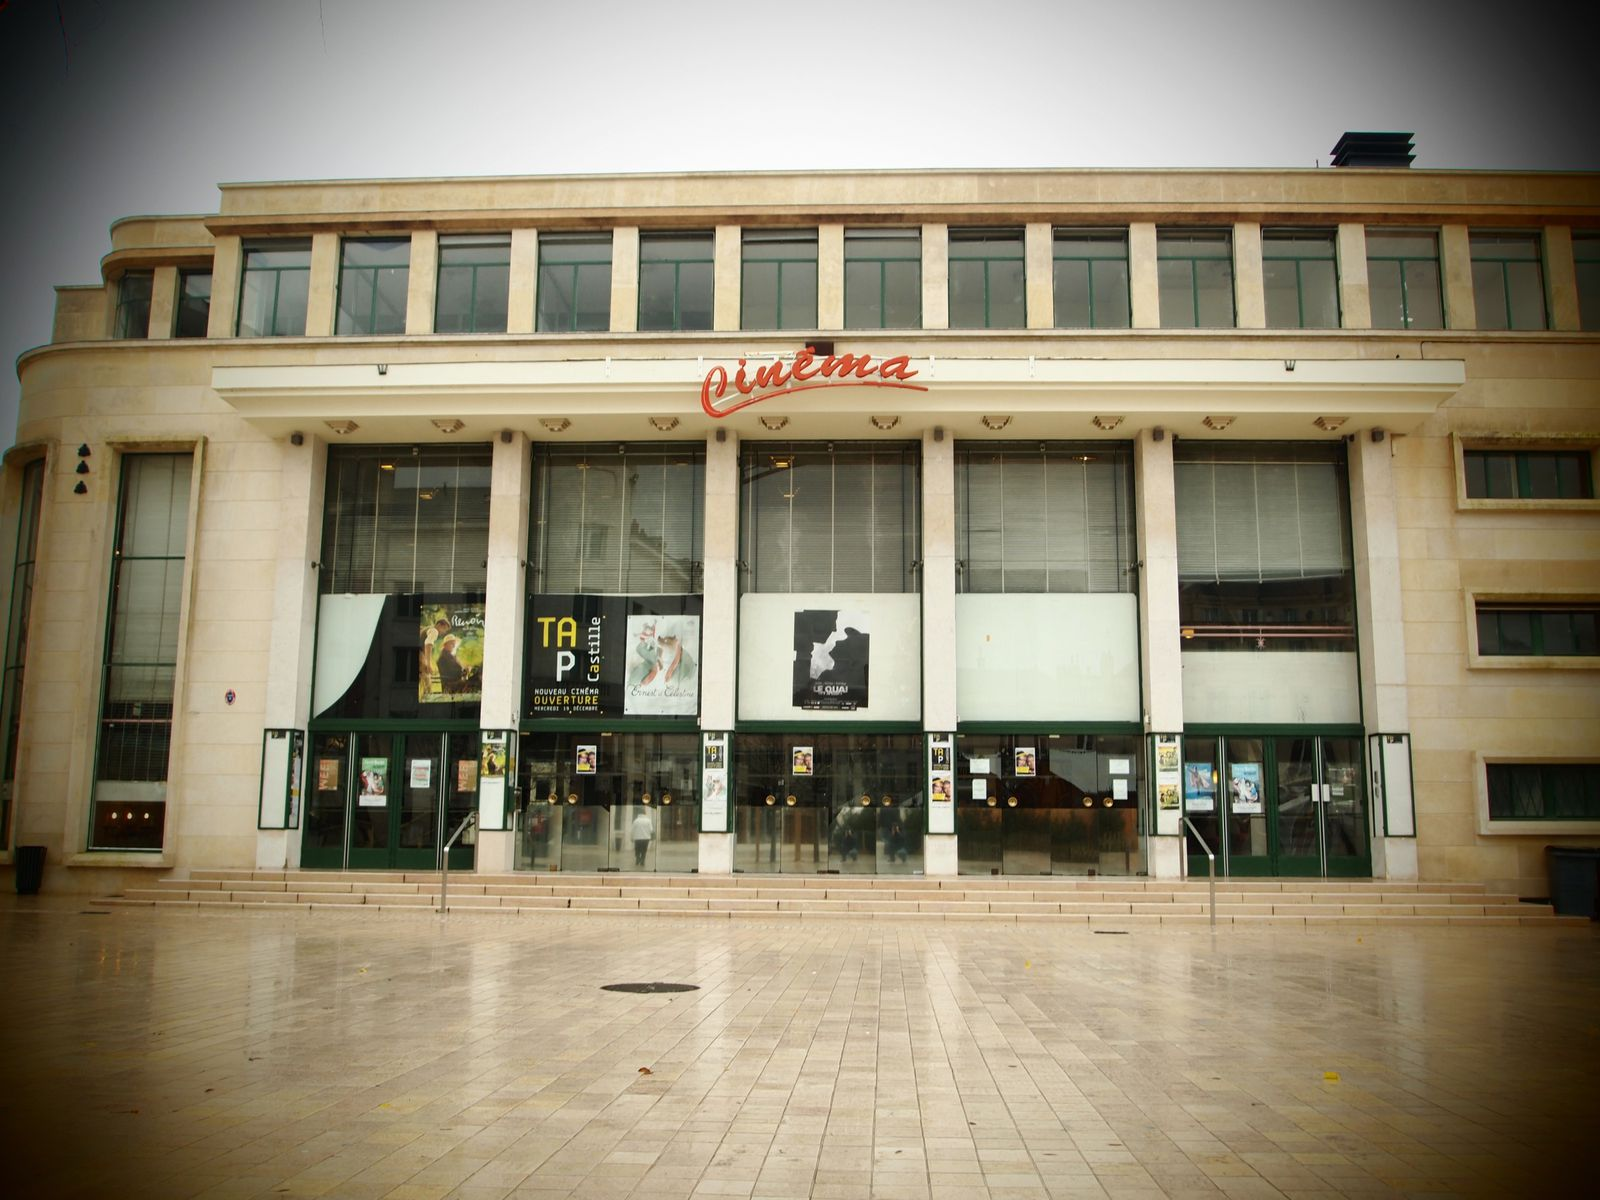 Le-theatre-cinema-Poitiers.JPG